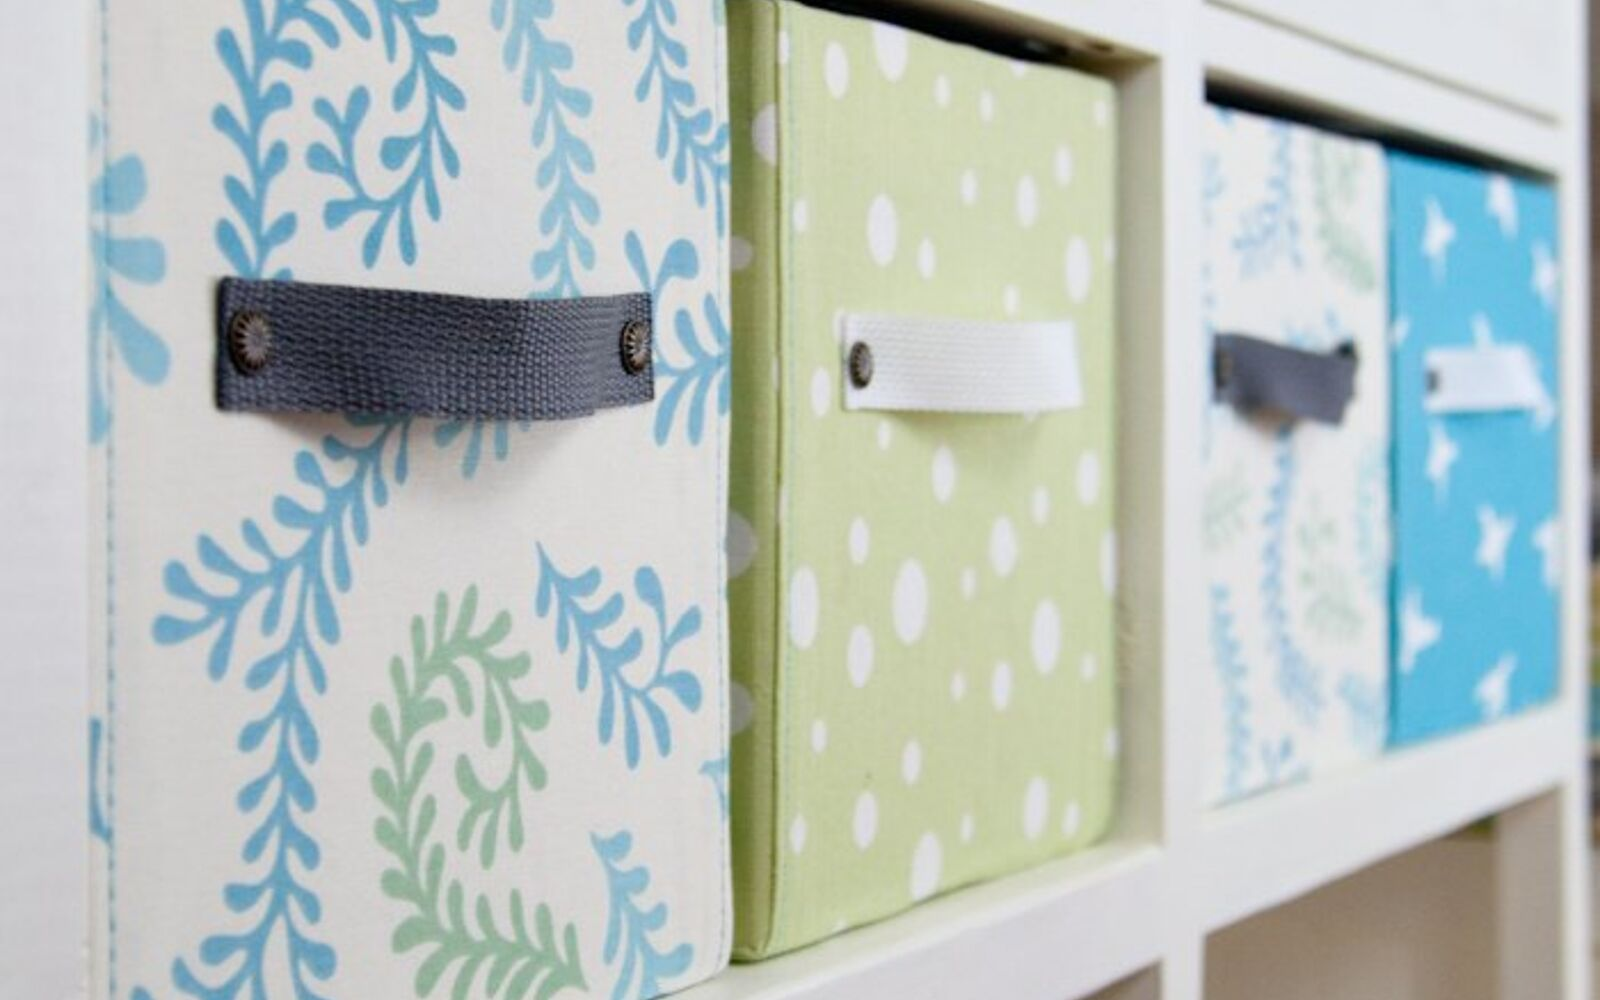 s 30 fun ways to keep your home organized, Decorate Cardboard Boxes To Store Tea